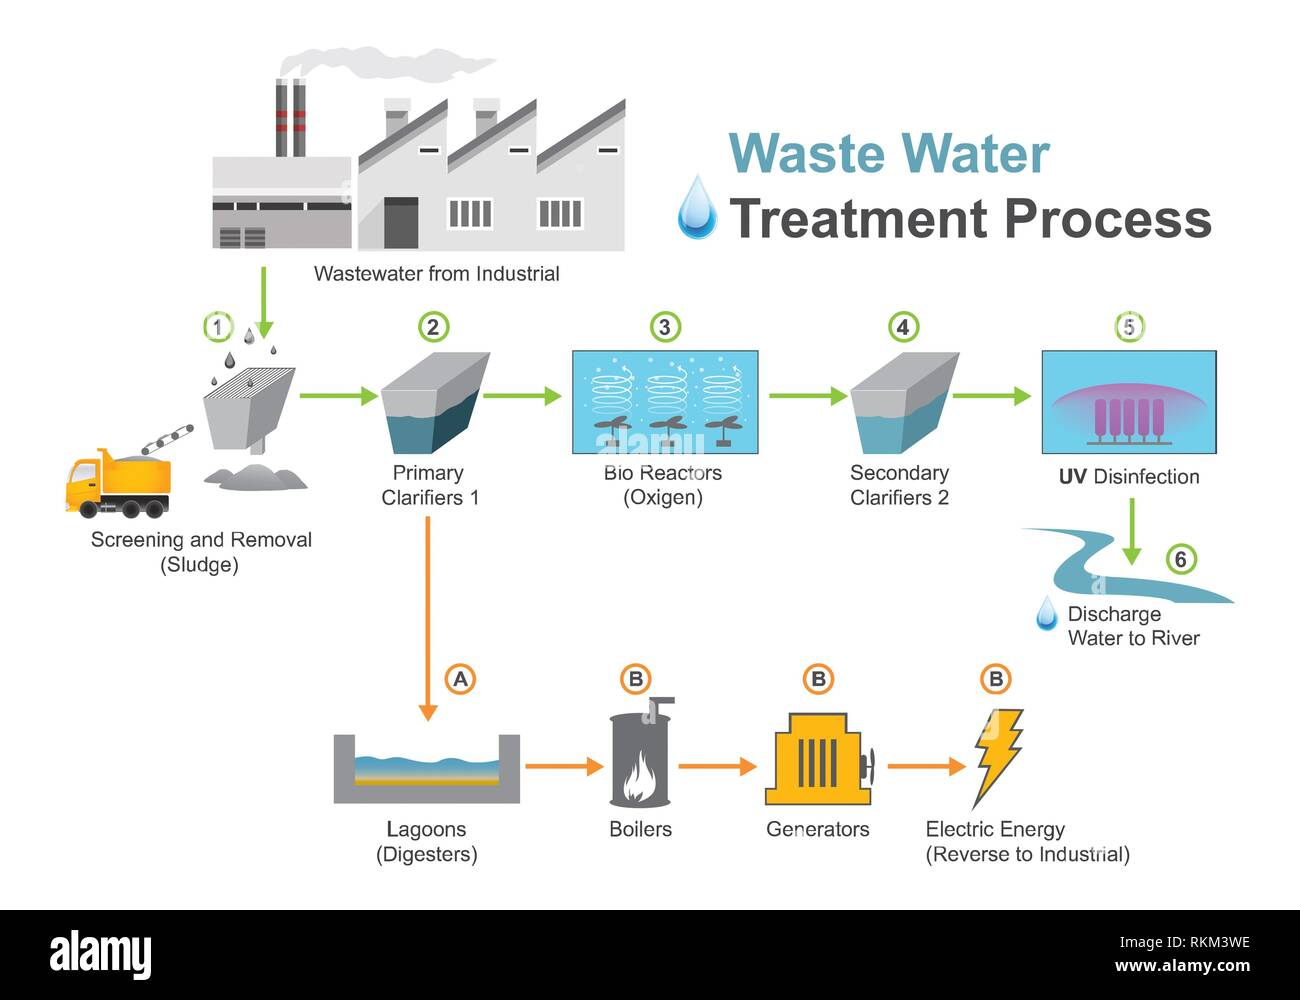 Wastewater treatment is a process used to convert wastewater which is water no longer needed or suitable for its most recent use into an effluent - Stock Image